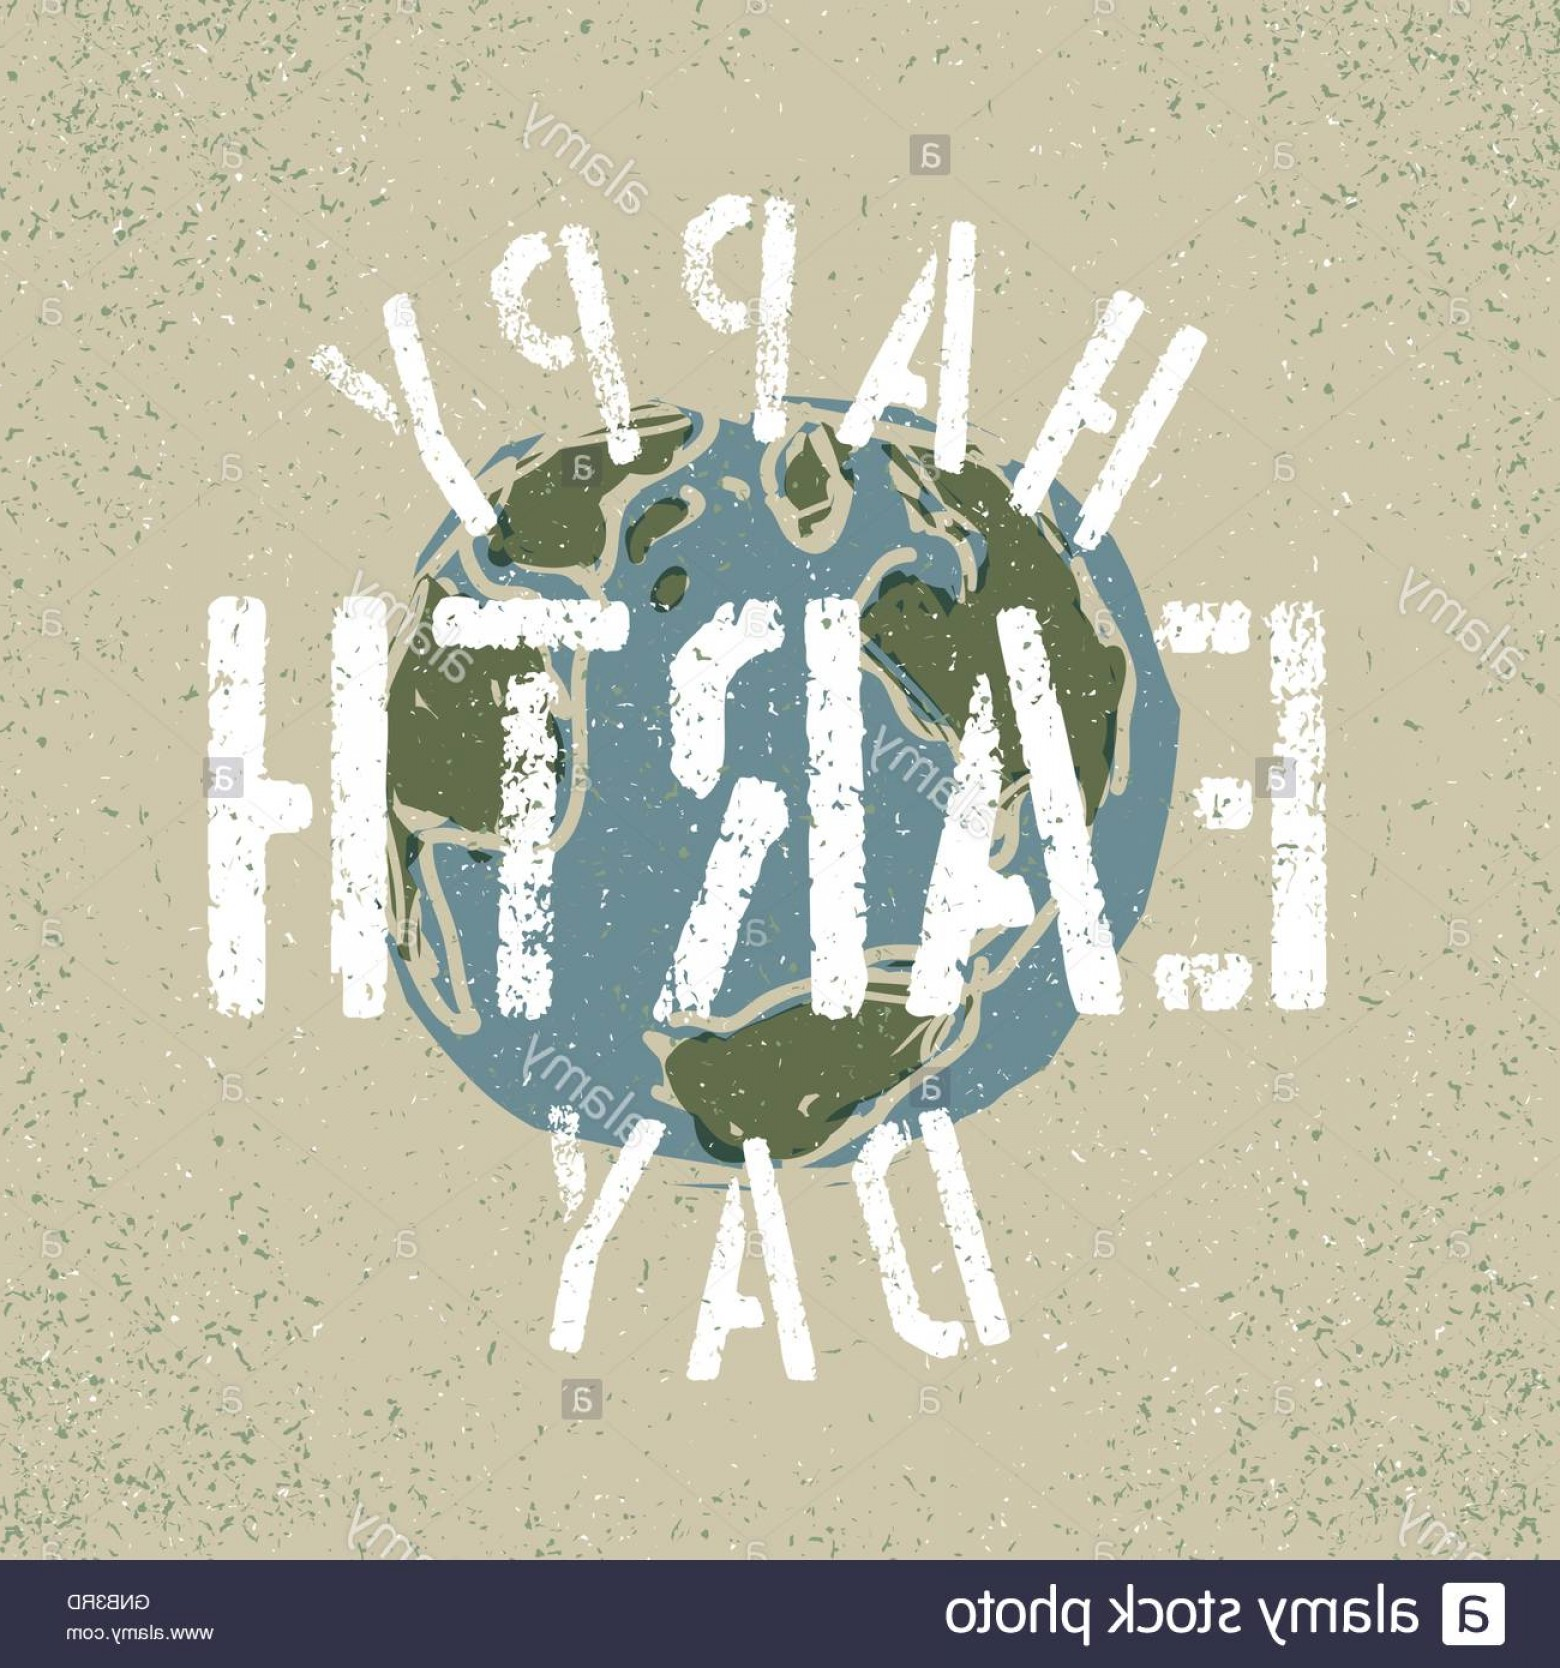 Gru Vector Logos: Stock Photo Happy Earth Day Grunge Lettering With Earth Symbol Stencil Gru